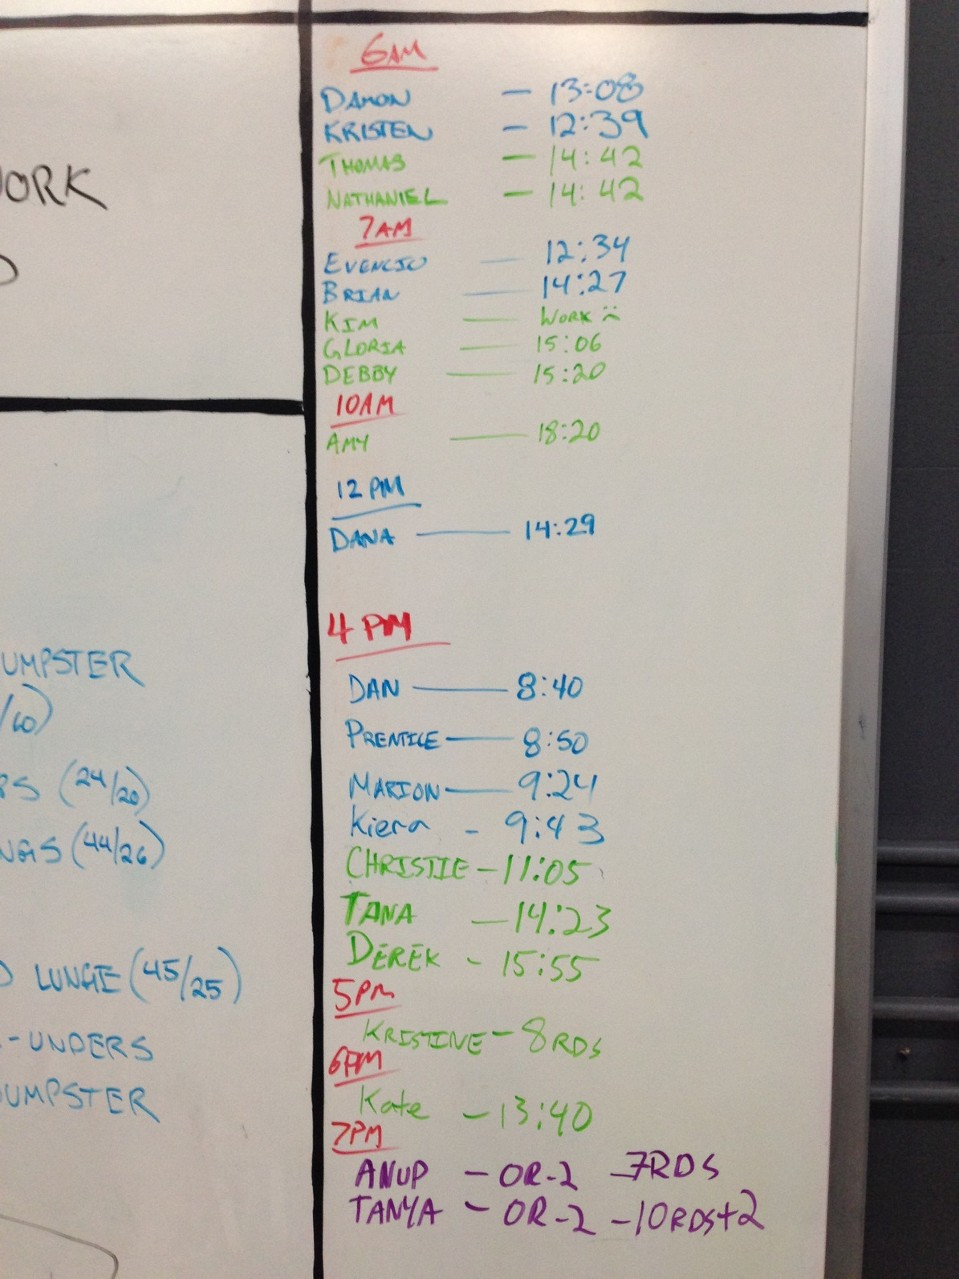 May 7 WOD Results